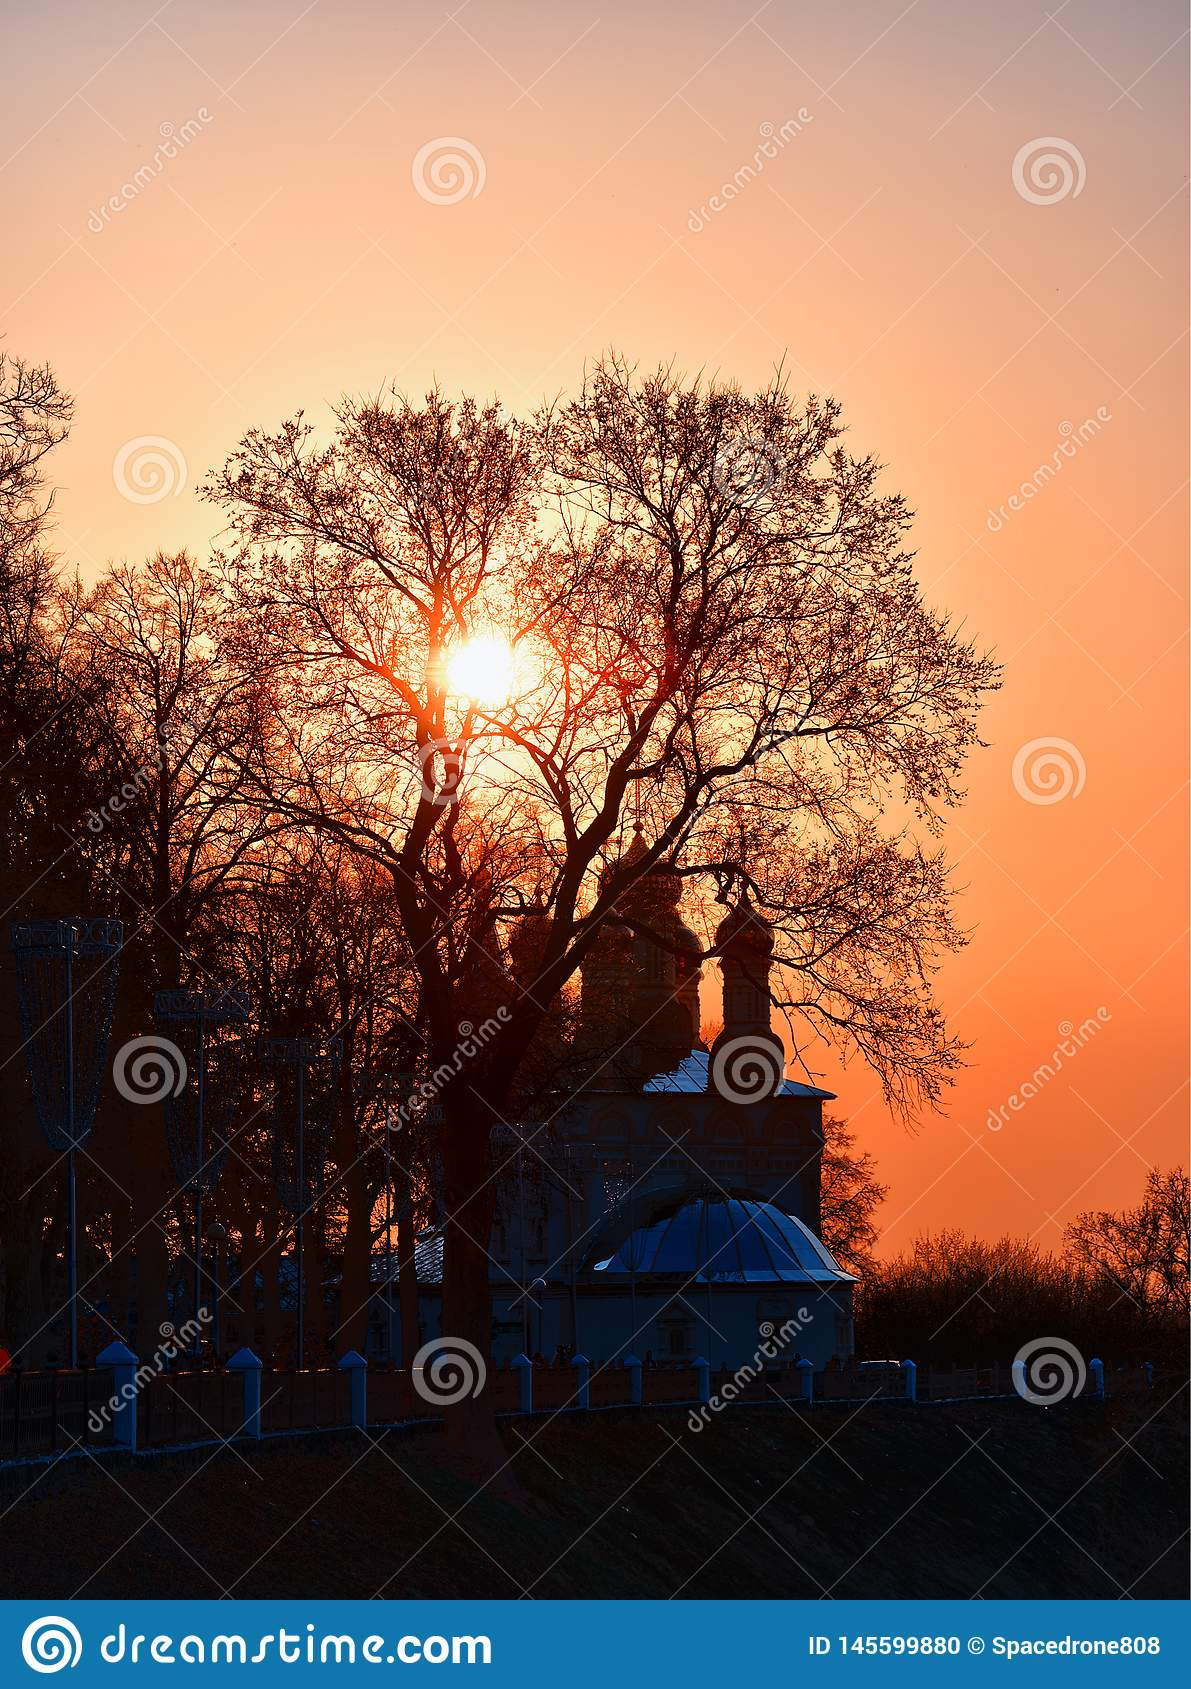 Dramatic Russian Church During Stunning Sunset Background